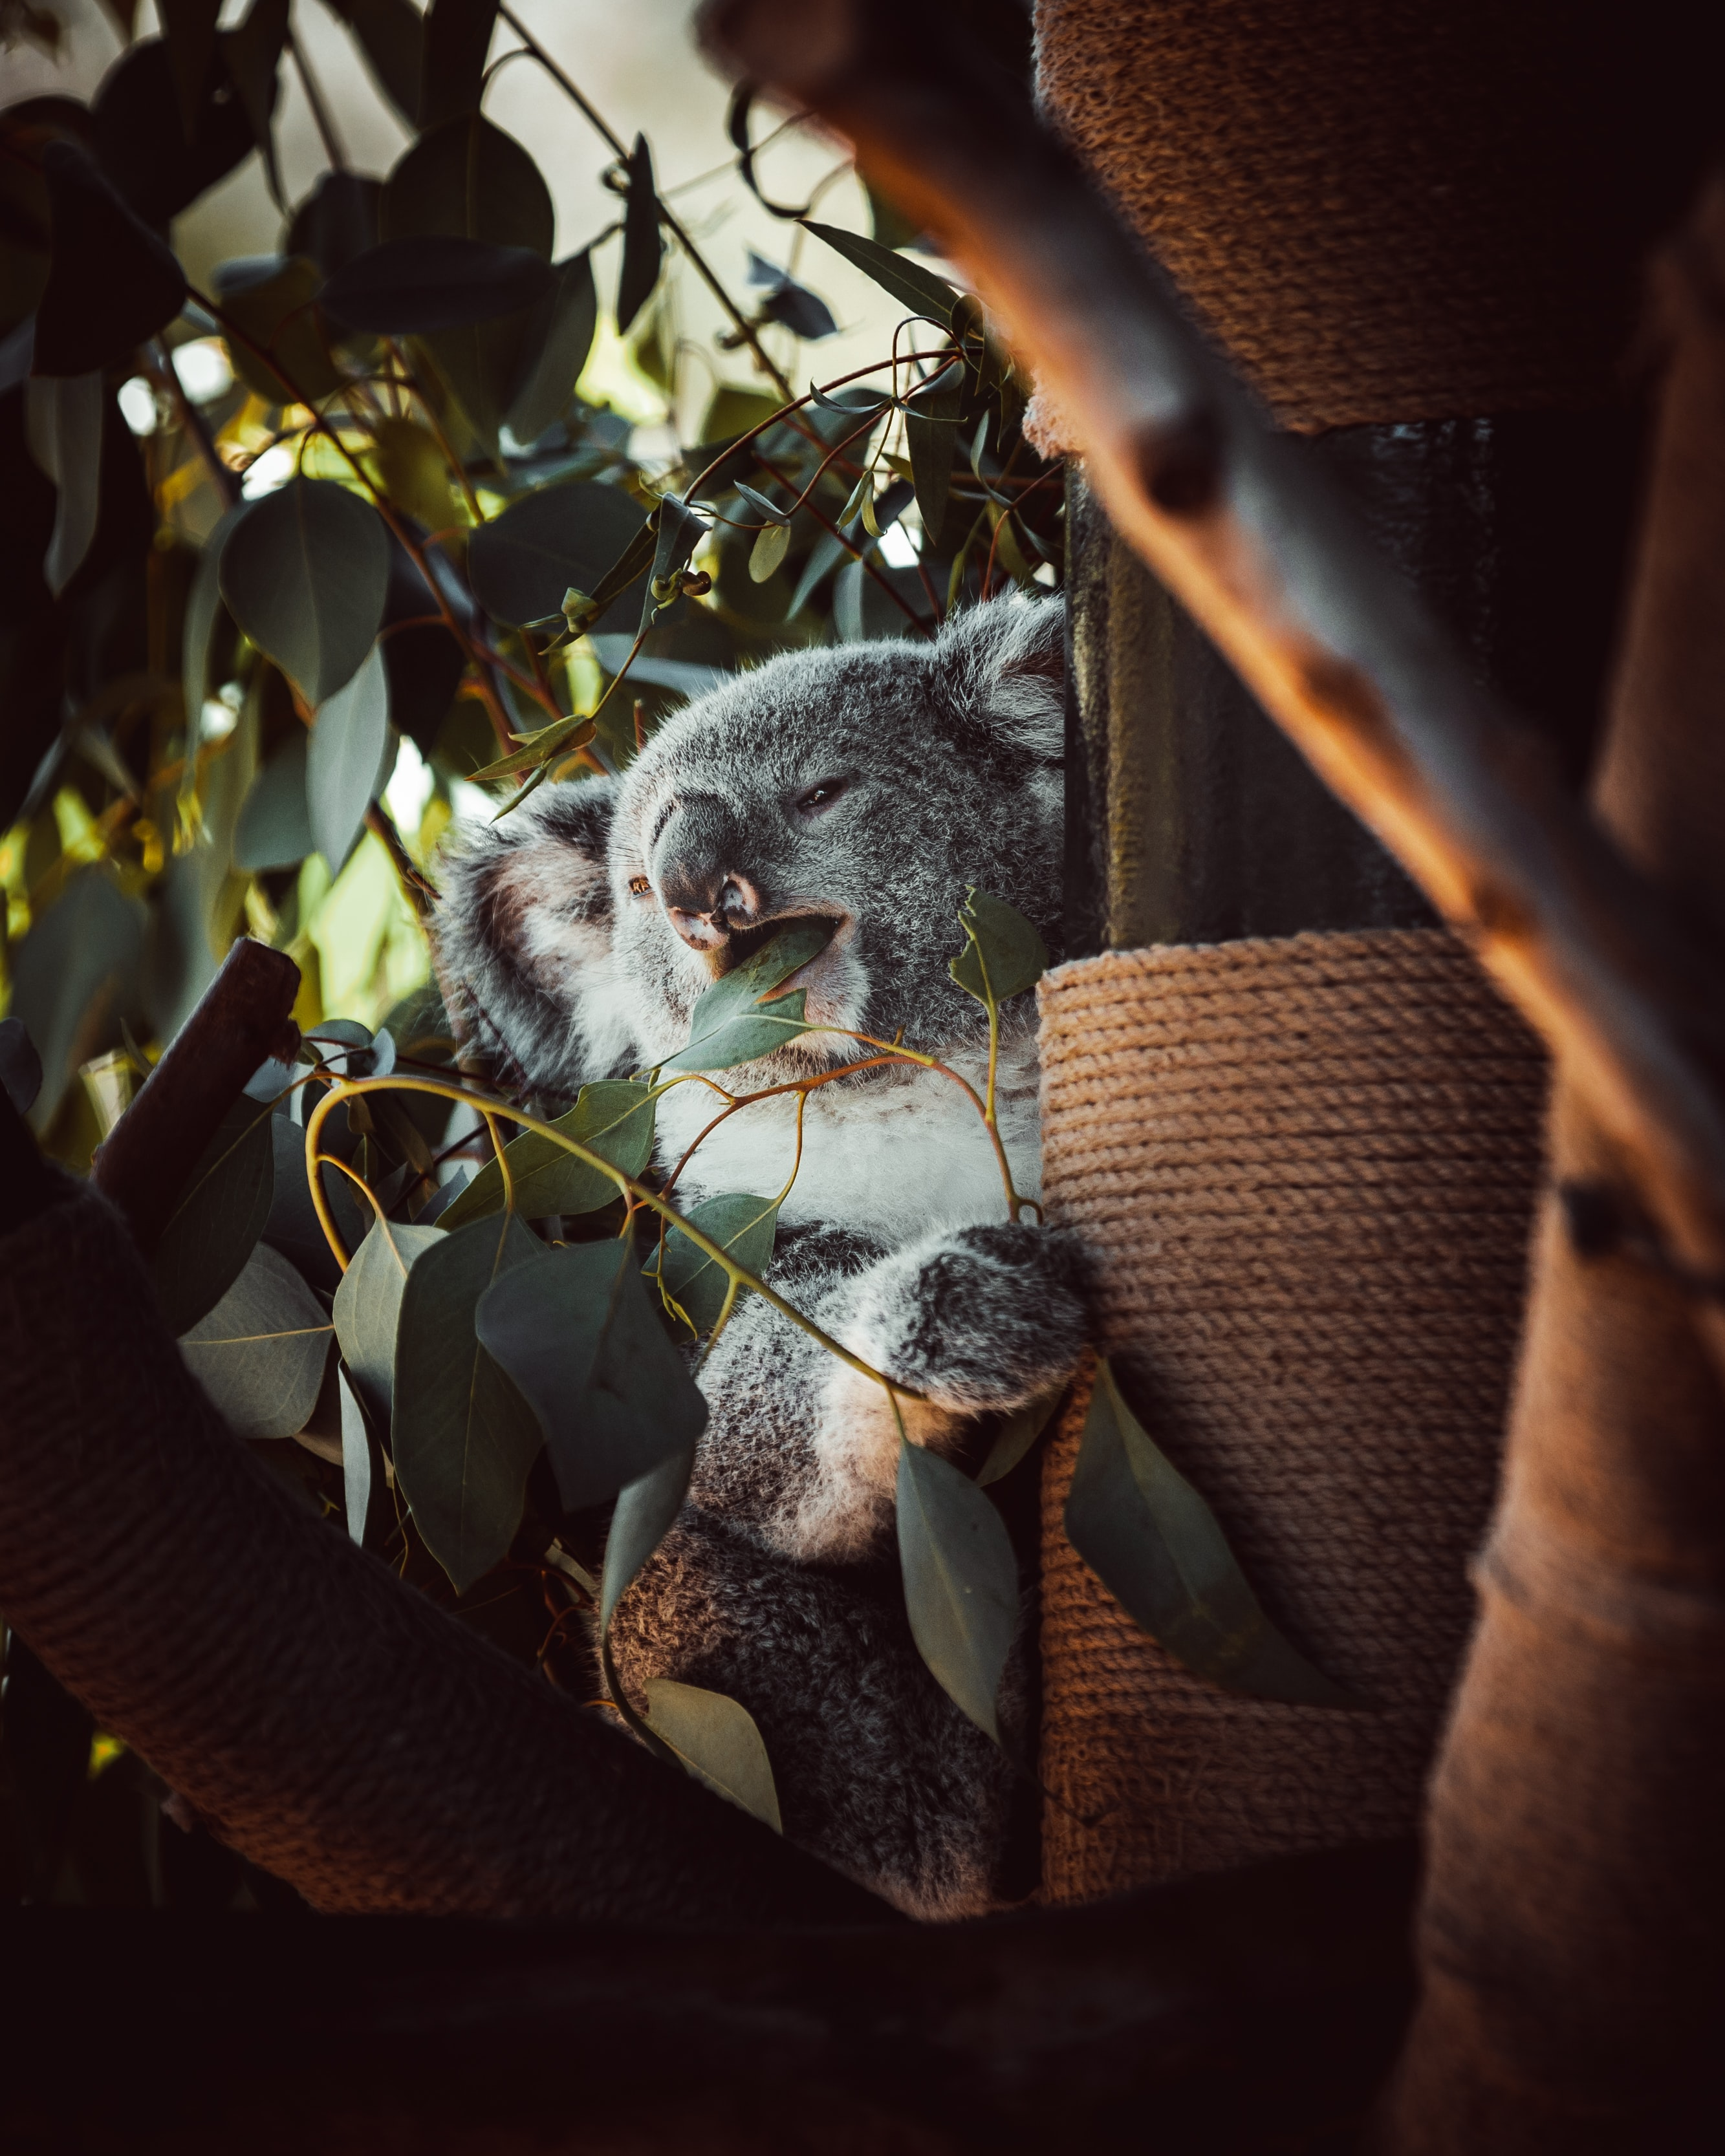 134787 download wallpaper Animals, Koala, Animal, Funny, Wood, Tree, Leaves screensavers and pictures for free